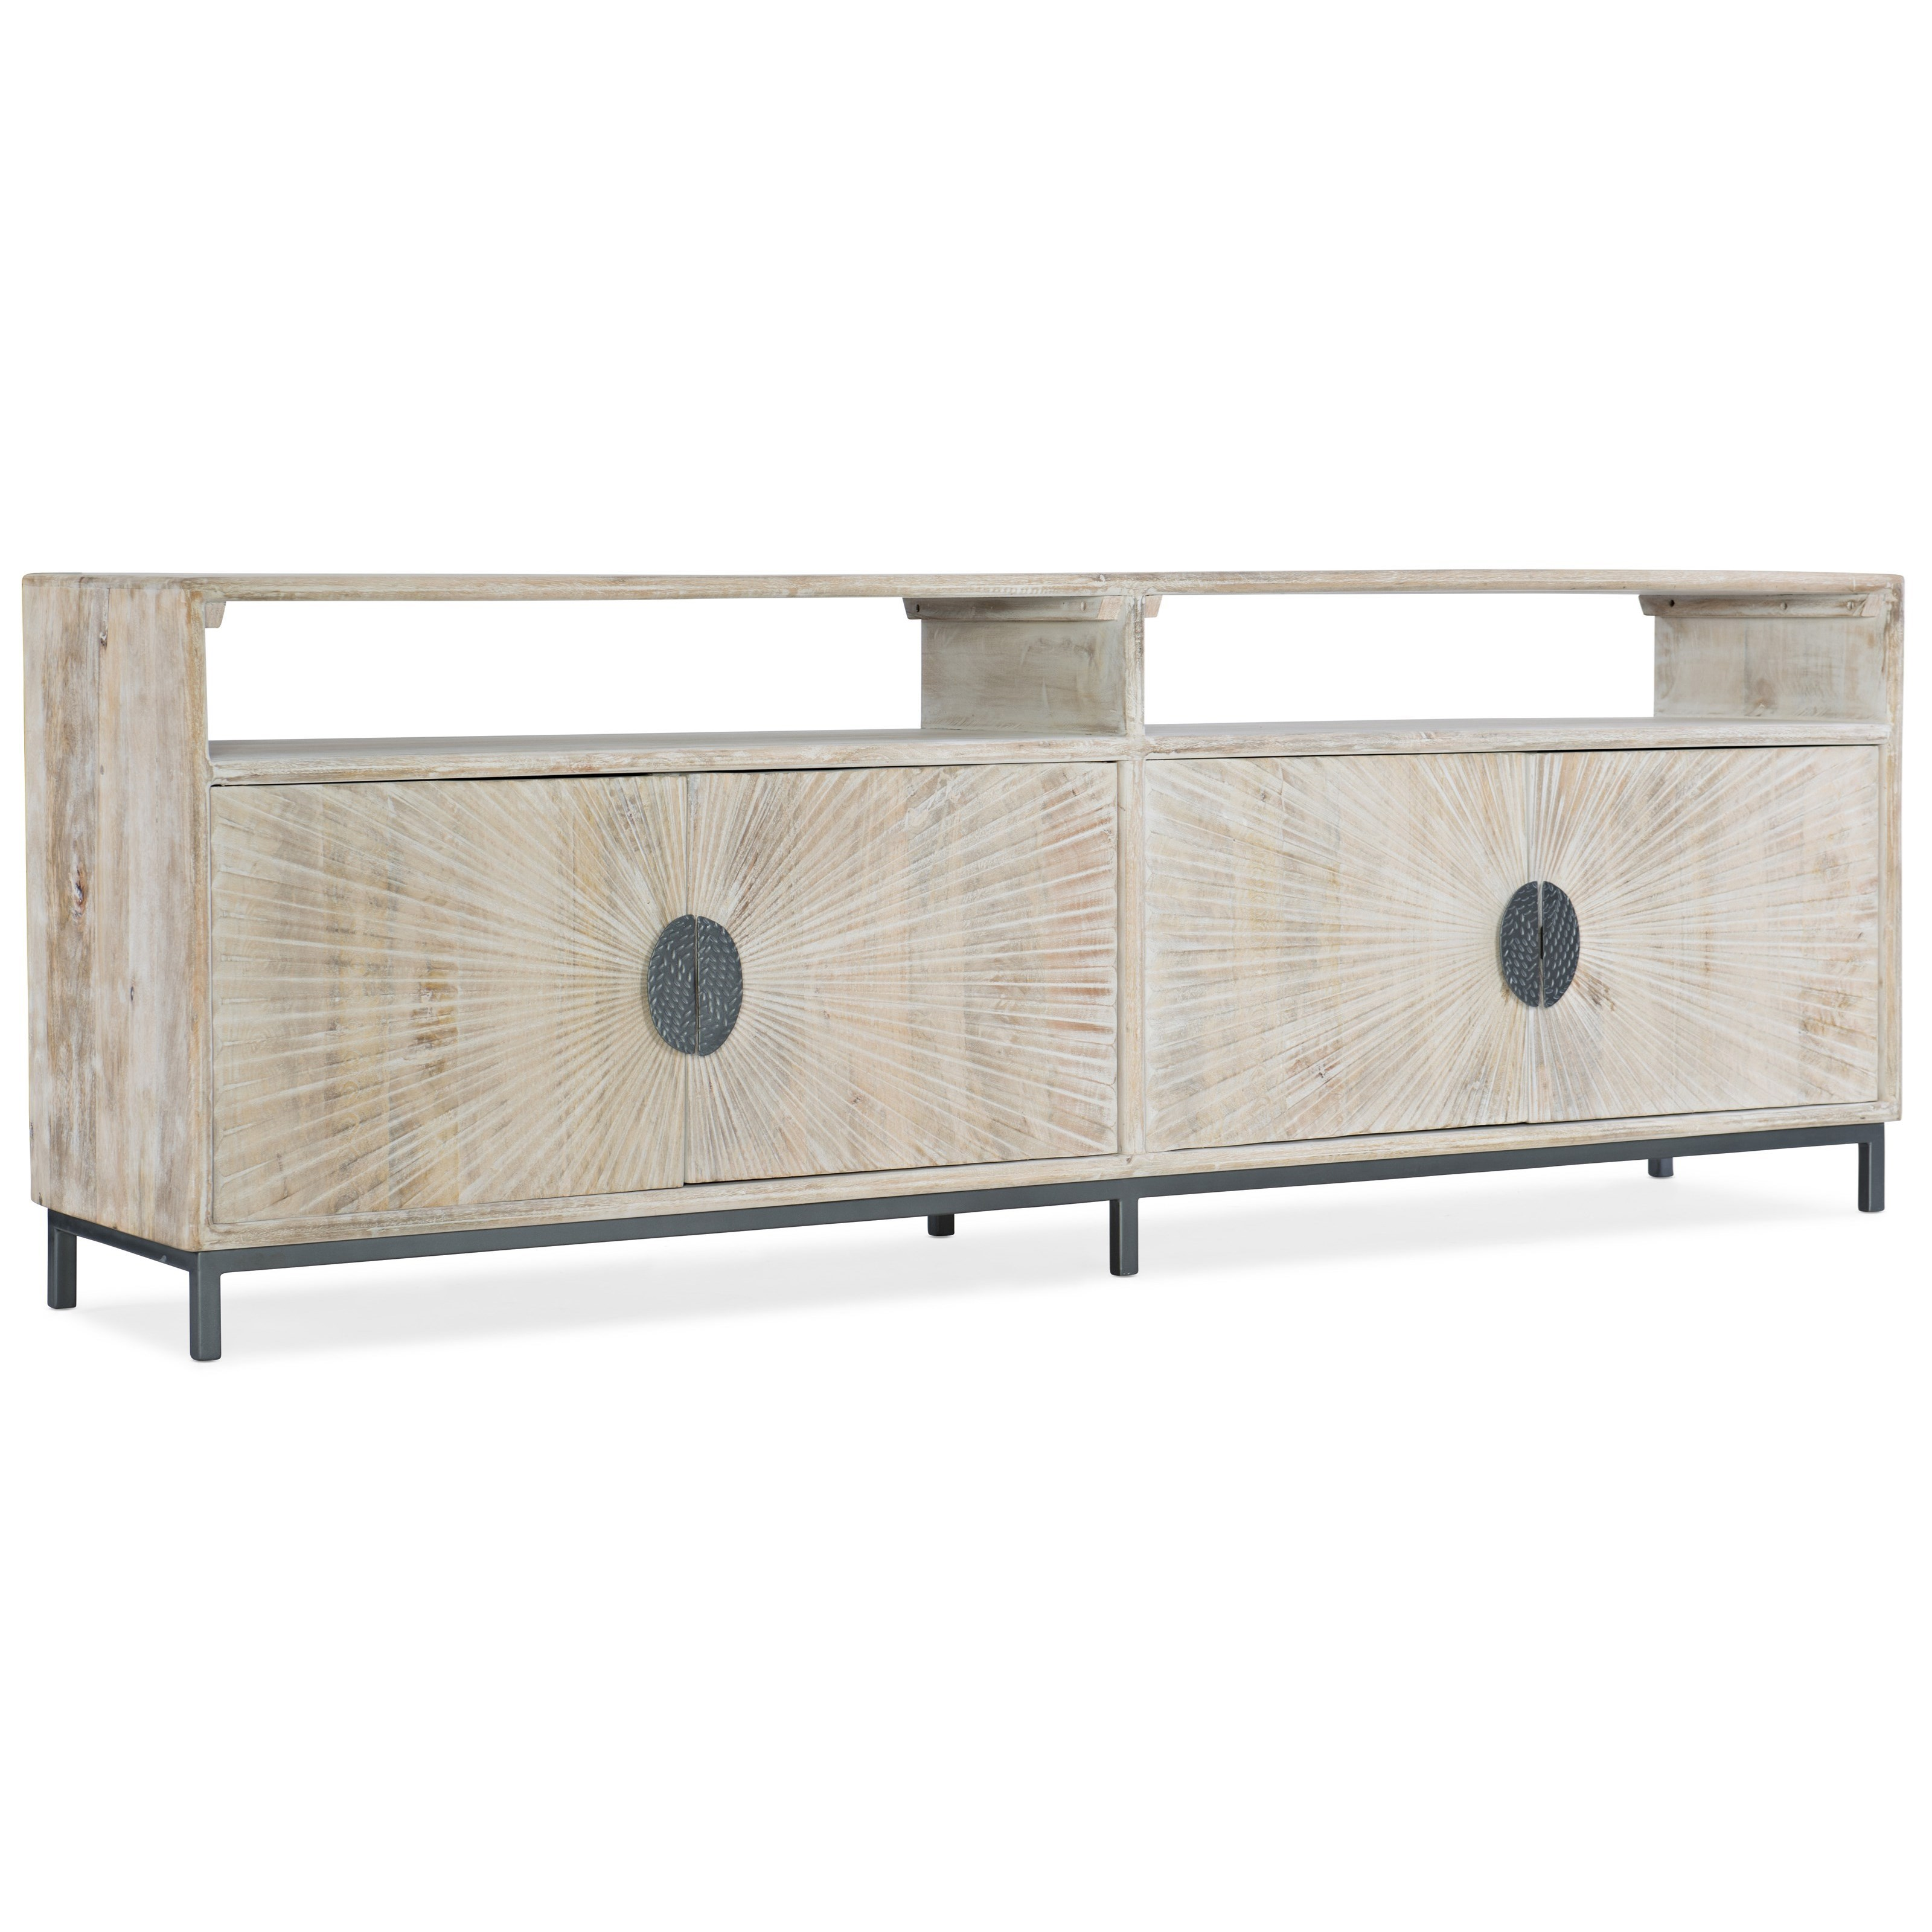 5560-55 Entertainment Console by Hooker Furniture at Fashion Furniture